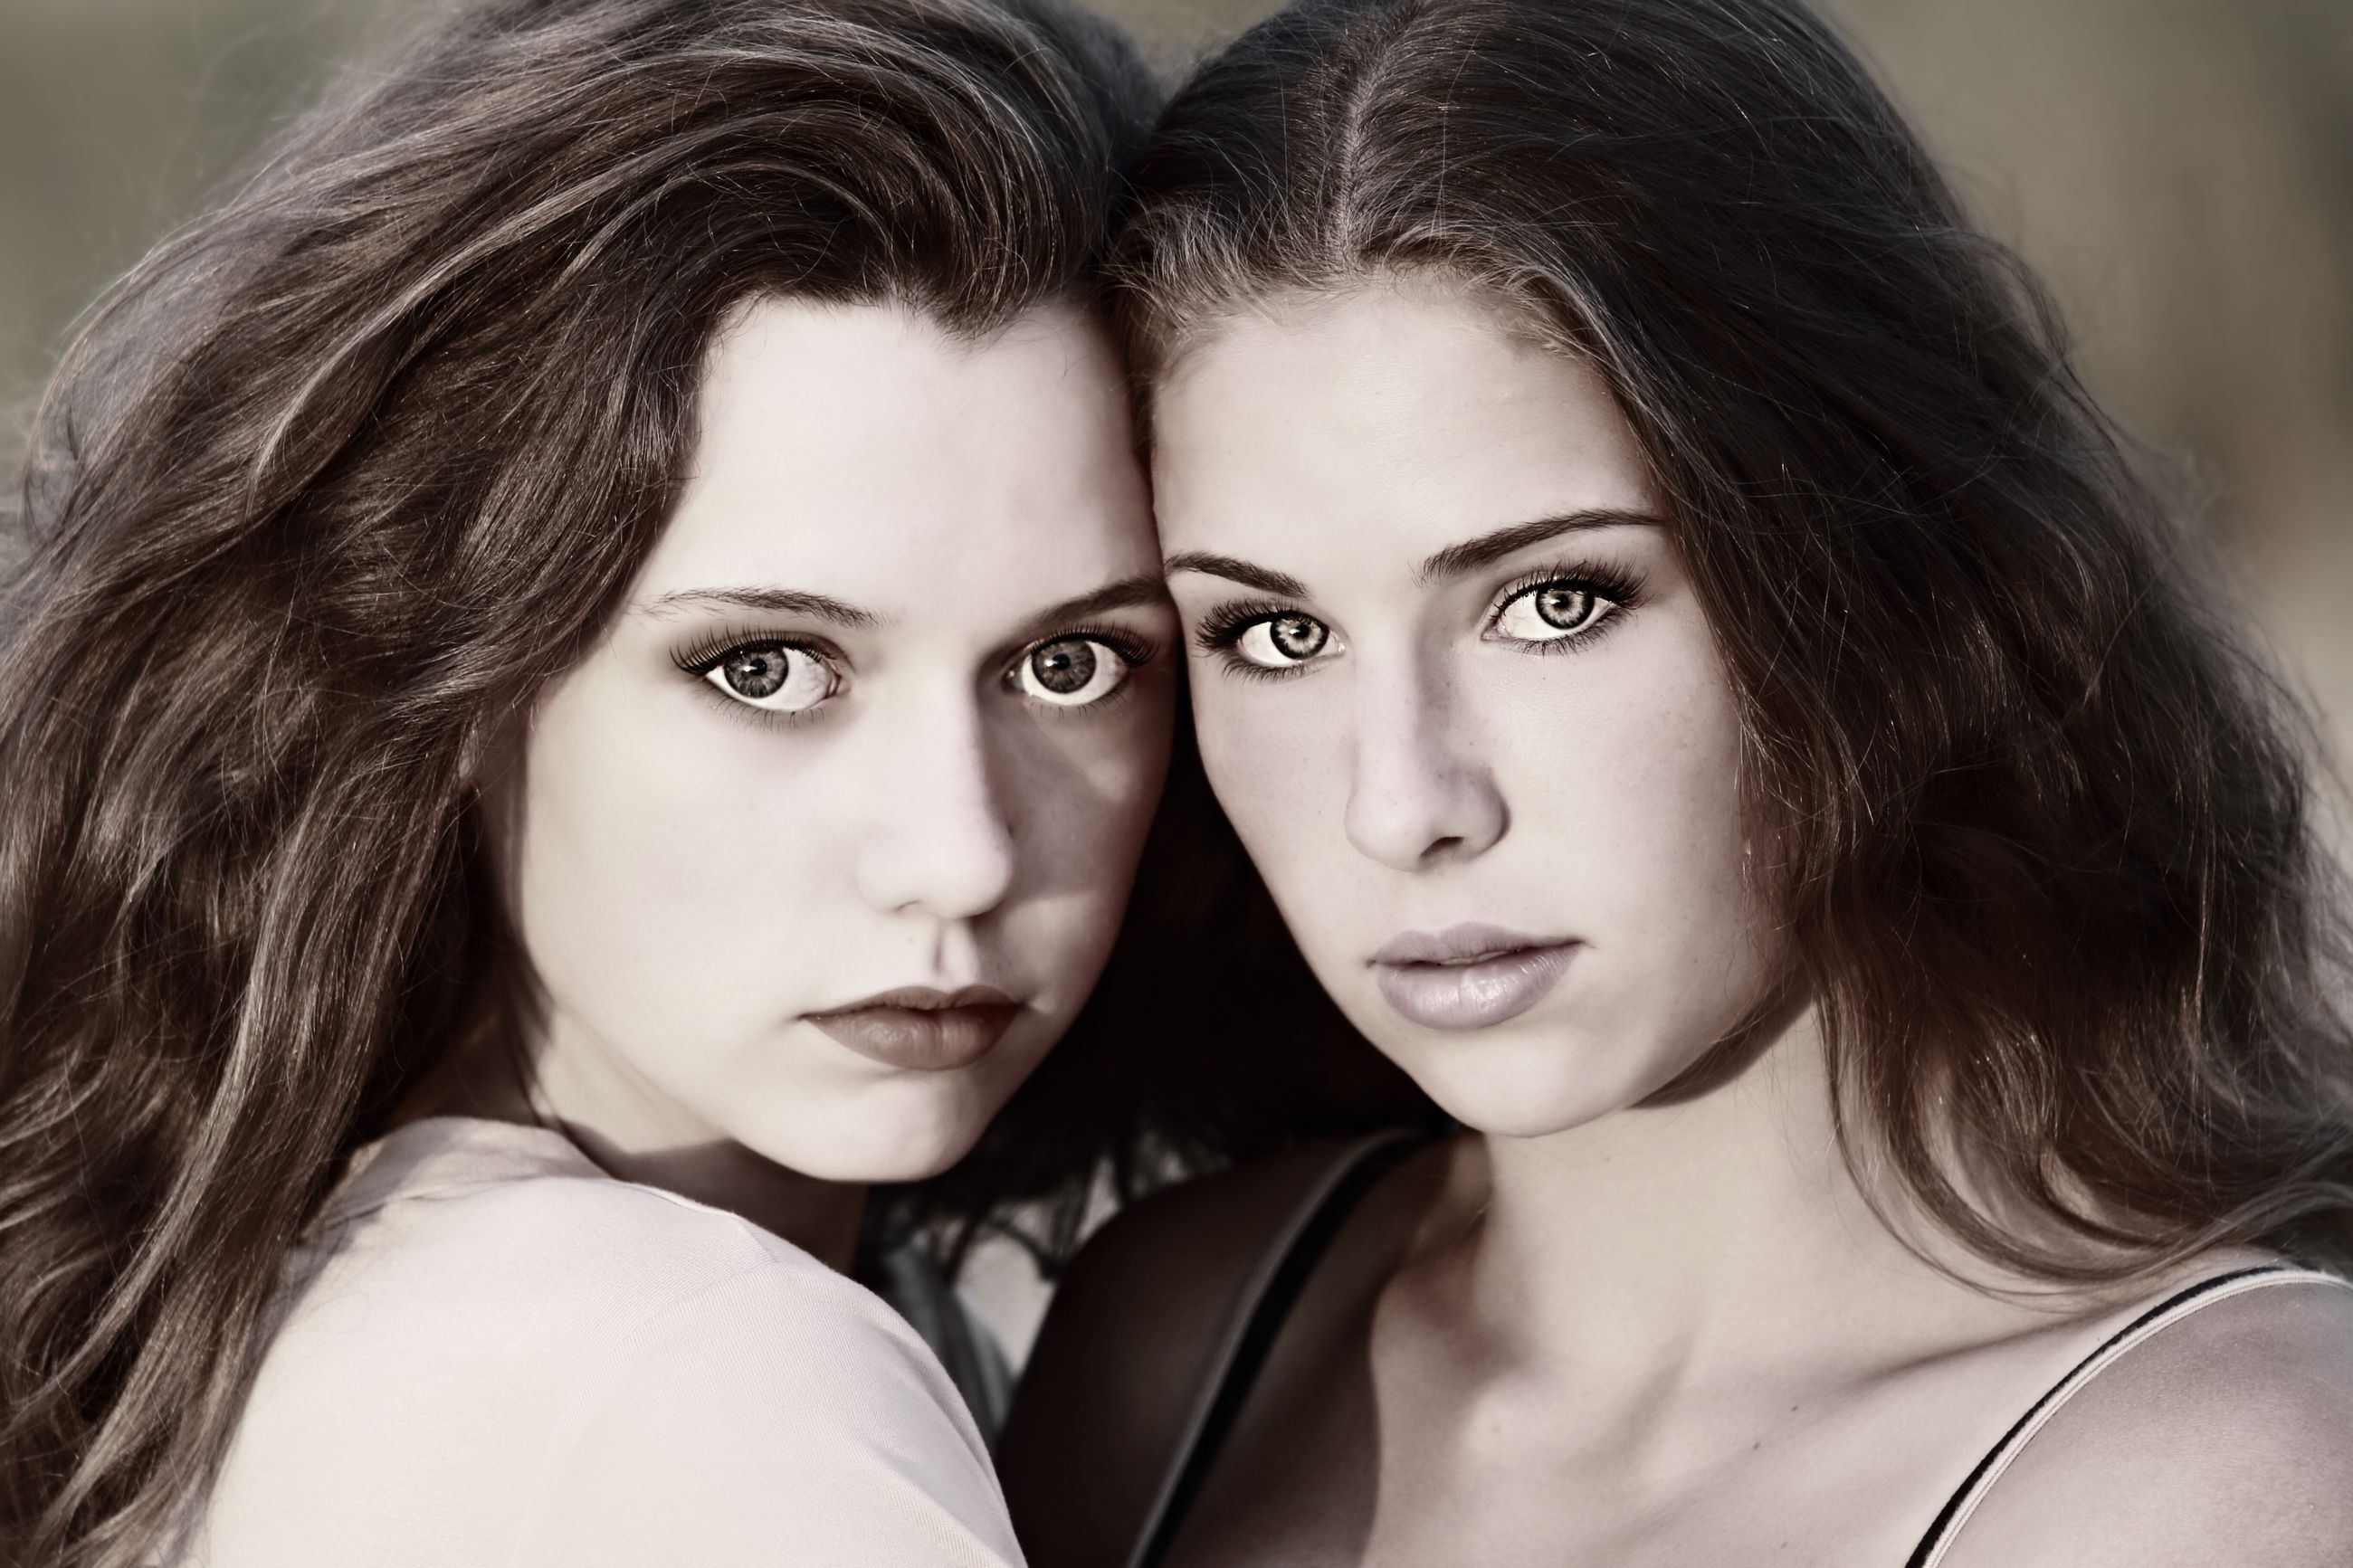 portrait, women, portrait photography, adult, looking at camera, togetherness, two people, young adult, headshot, photo shoot, person, black and white, hairstyle, long hair, female, friendship, human face, emotion, love, child, brown hair, close-up, monochrome, positive emotion, bonding, monochrome photography, teenager, human hair, lifestyles, fashion, human eye, serious, clothing, indoors